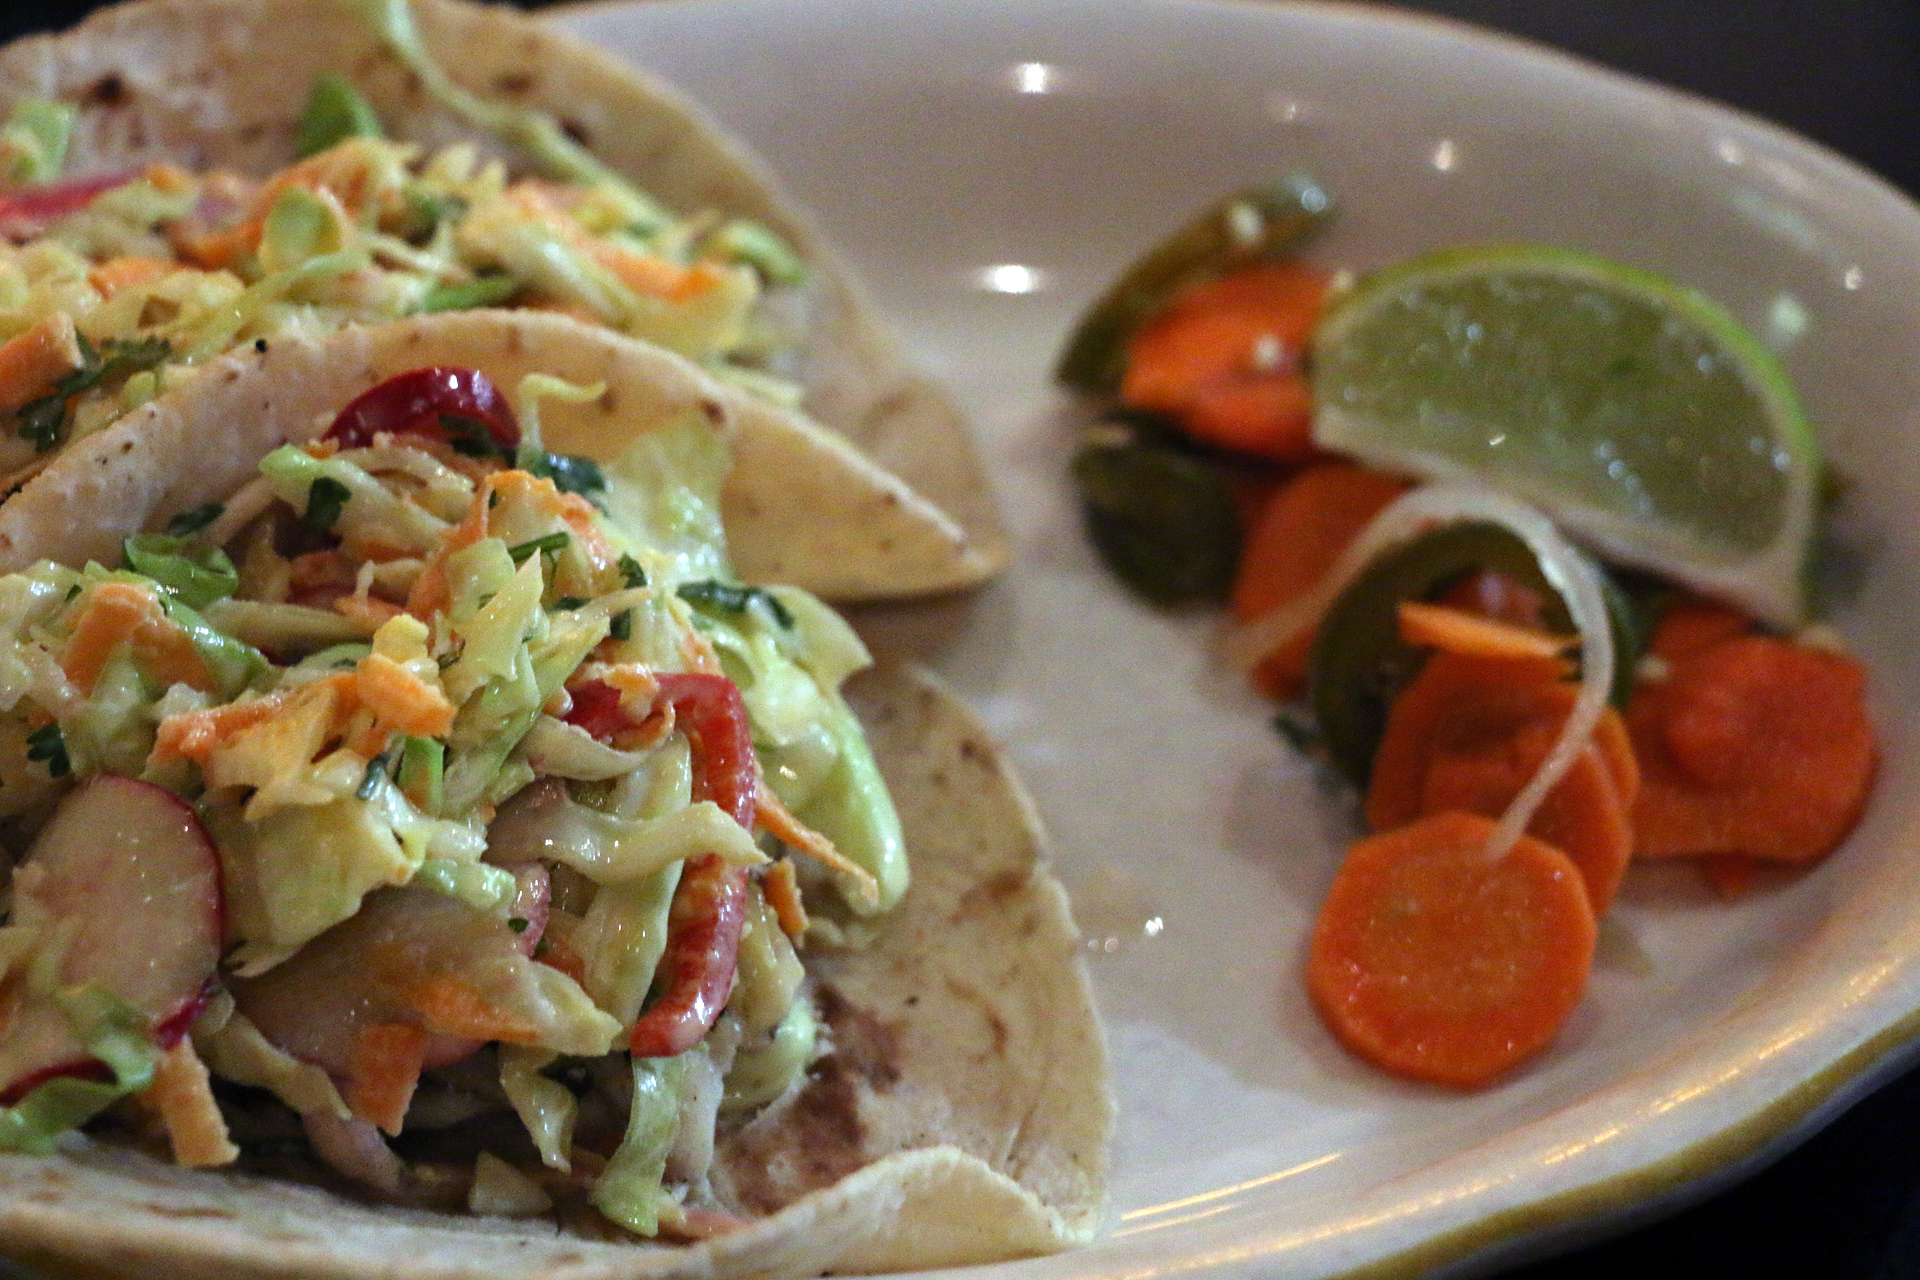 Where to go for fish tacos 6 top spots in oakland and for Best fish for fish tacos